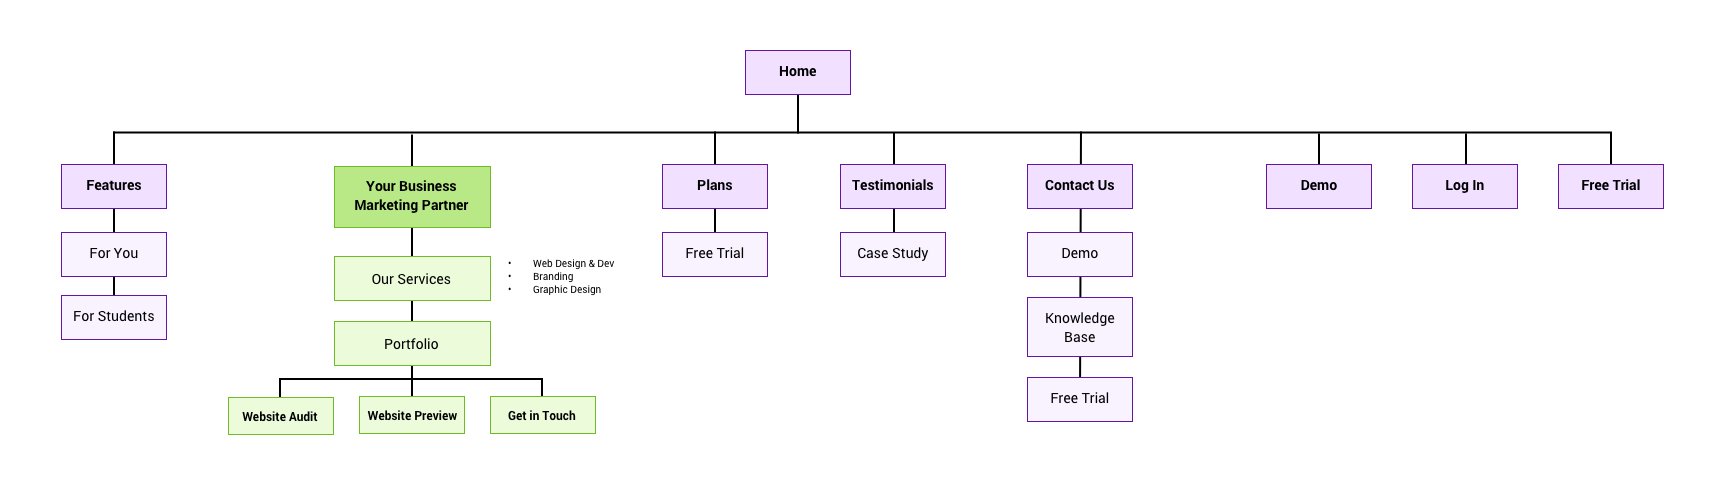 CPP Sitemap (Marketing Site).png